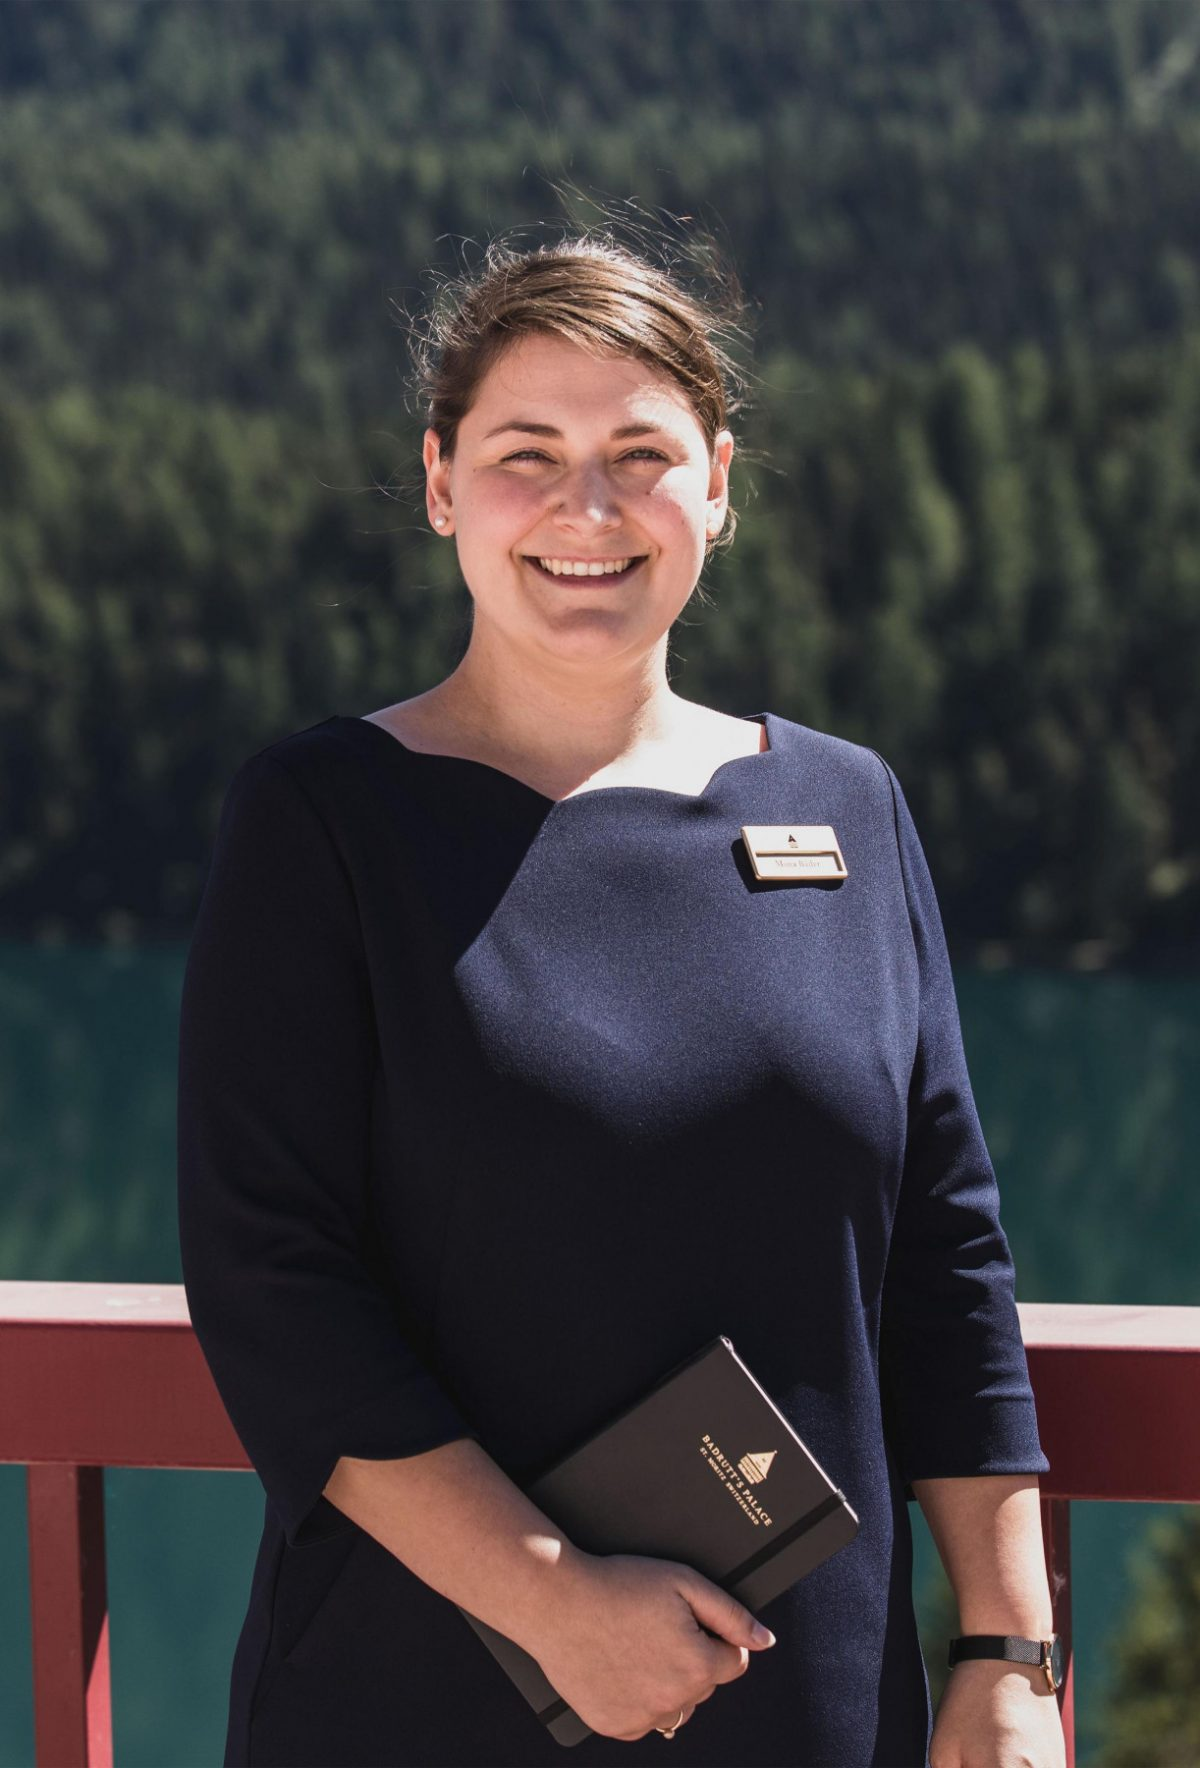 Mona Bäder Event Executive at Badrutt's Palace Hotel in St. Moritz